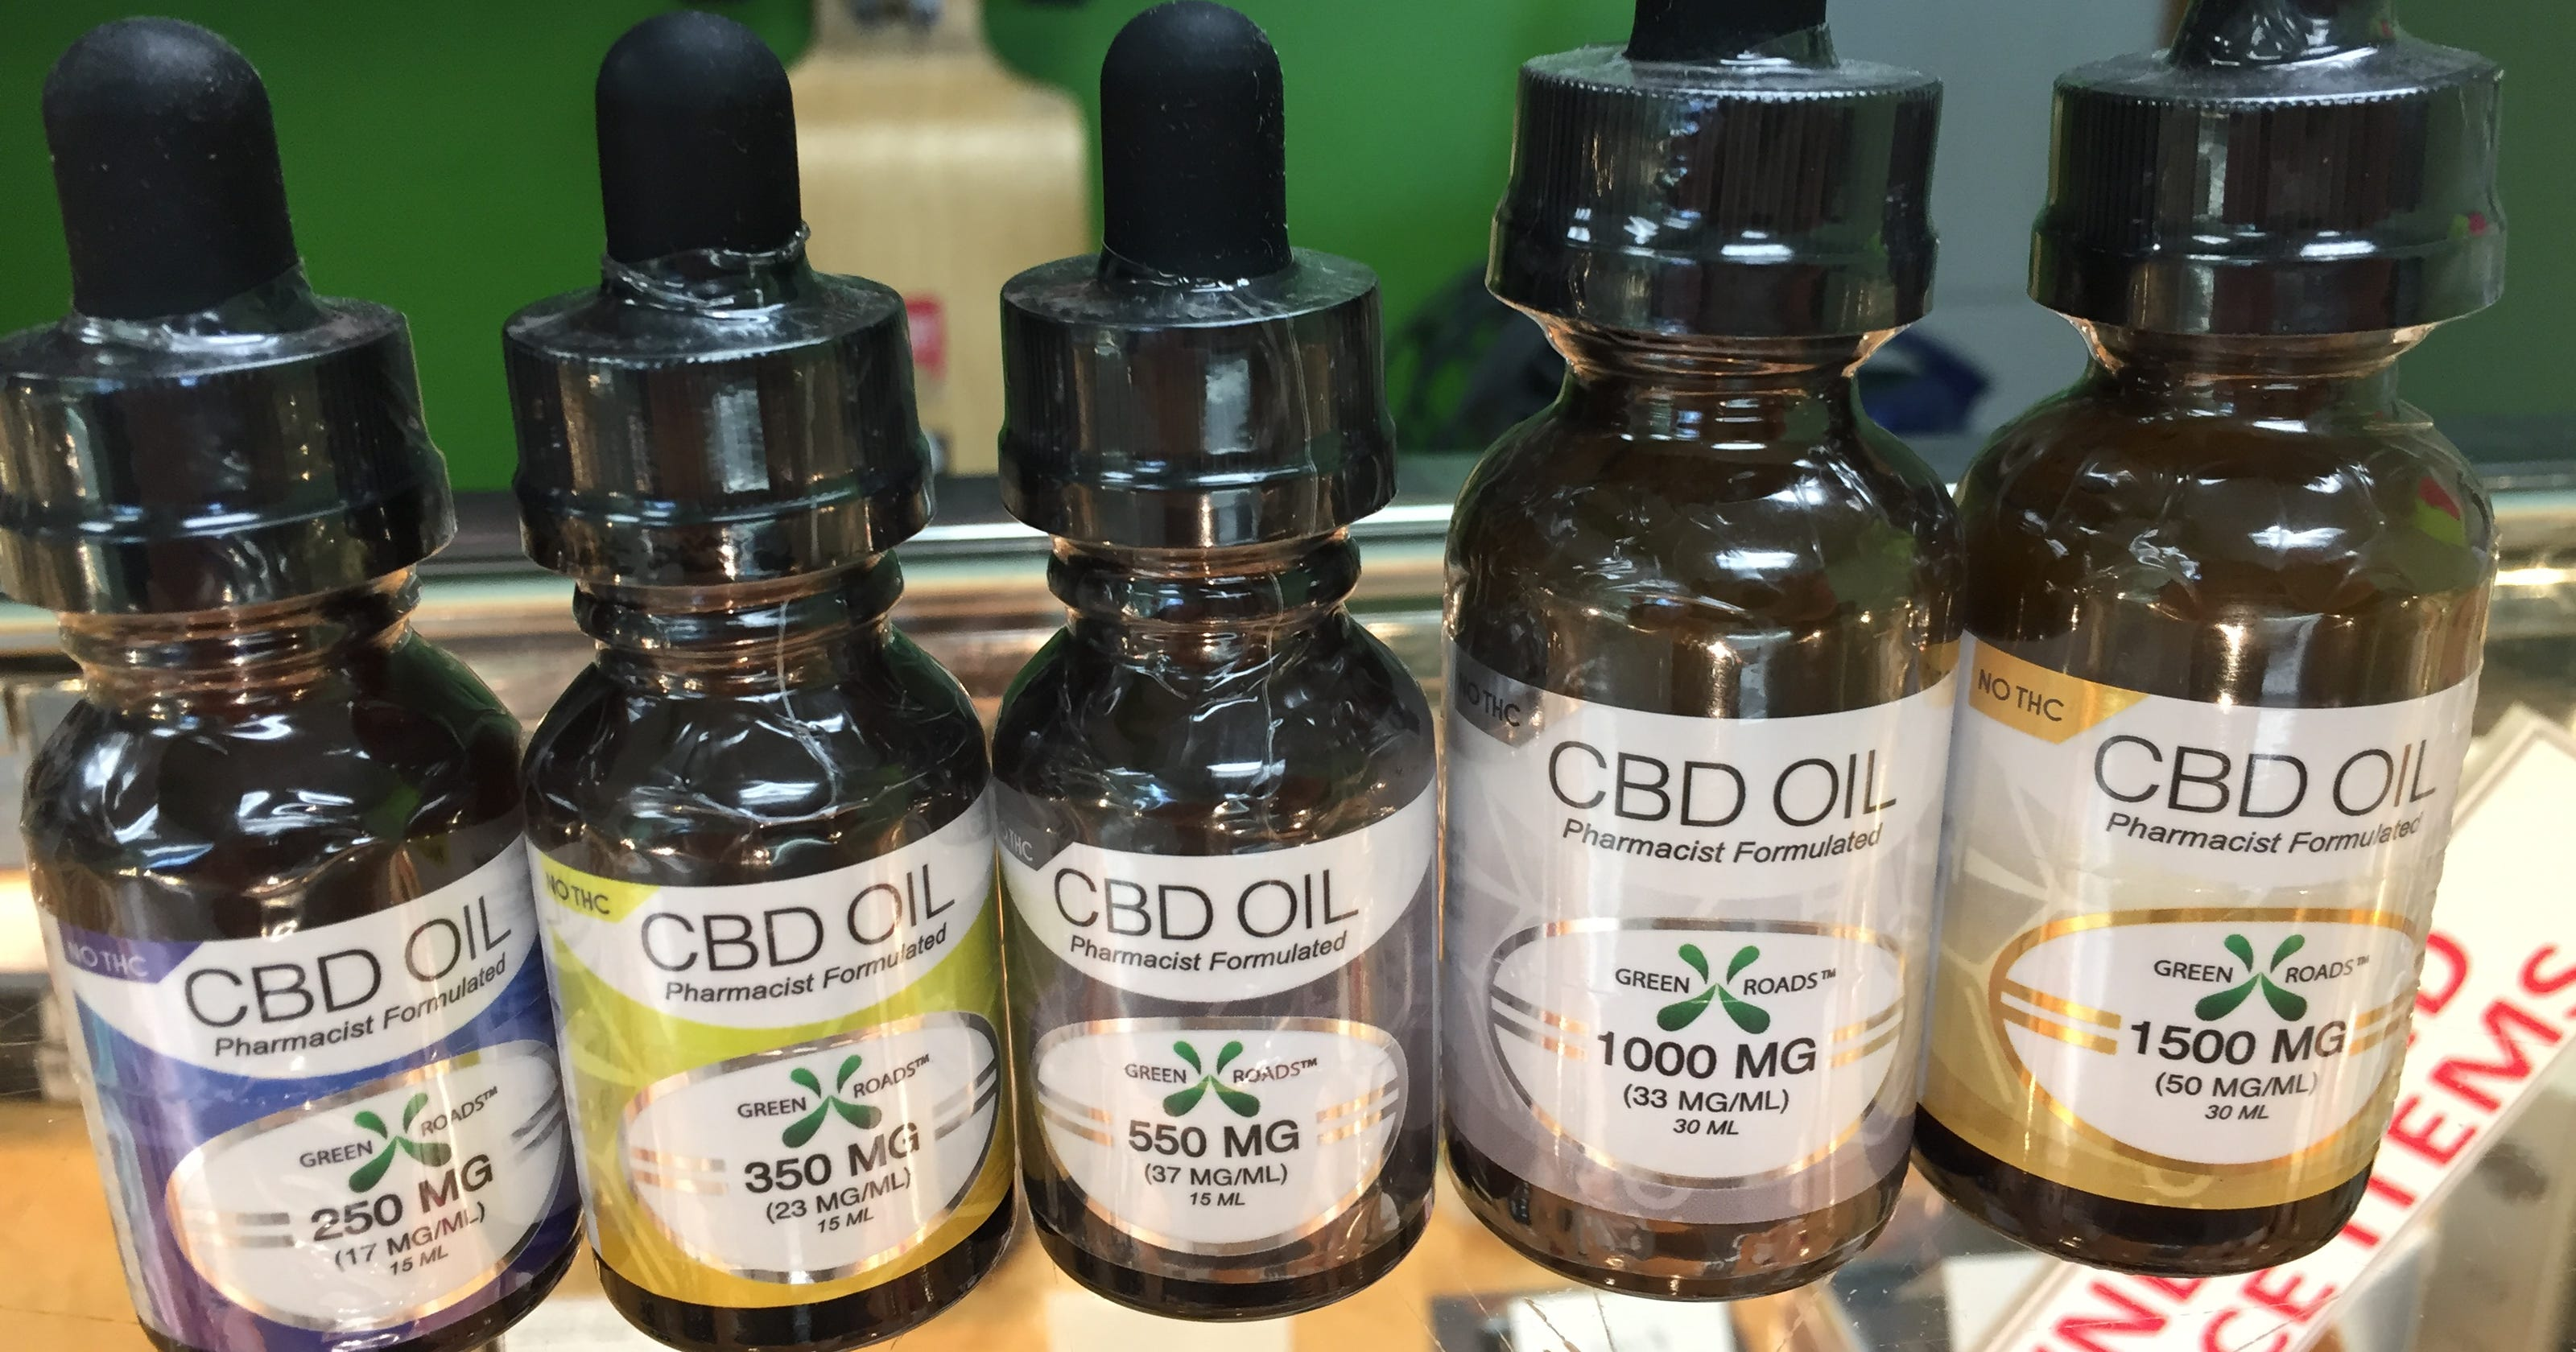 Cannabis oil sold by Iowa stores is illegal marijuana, authorities say